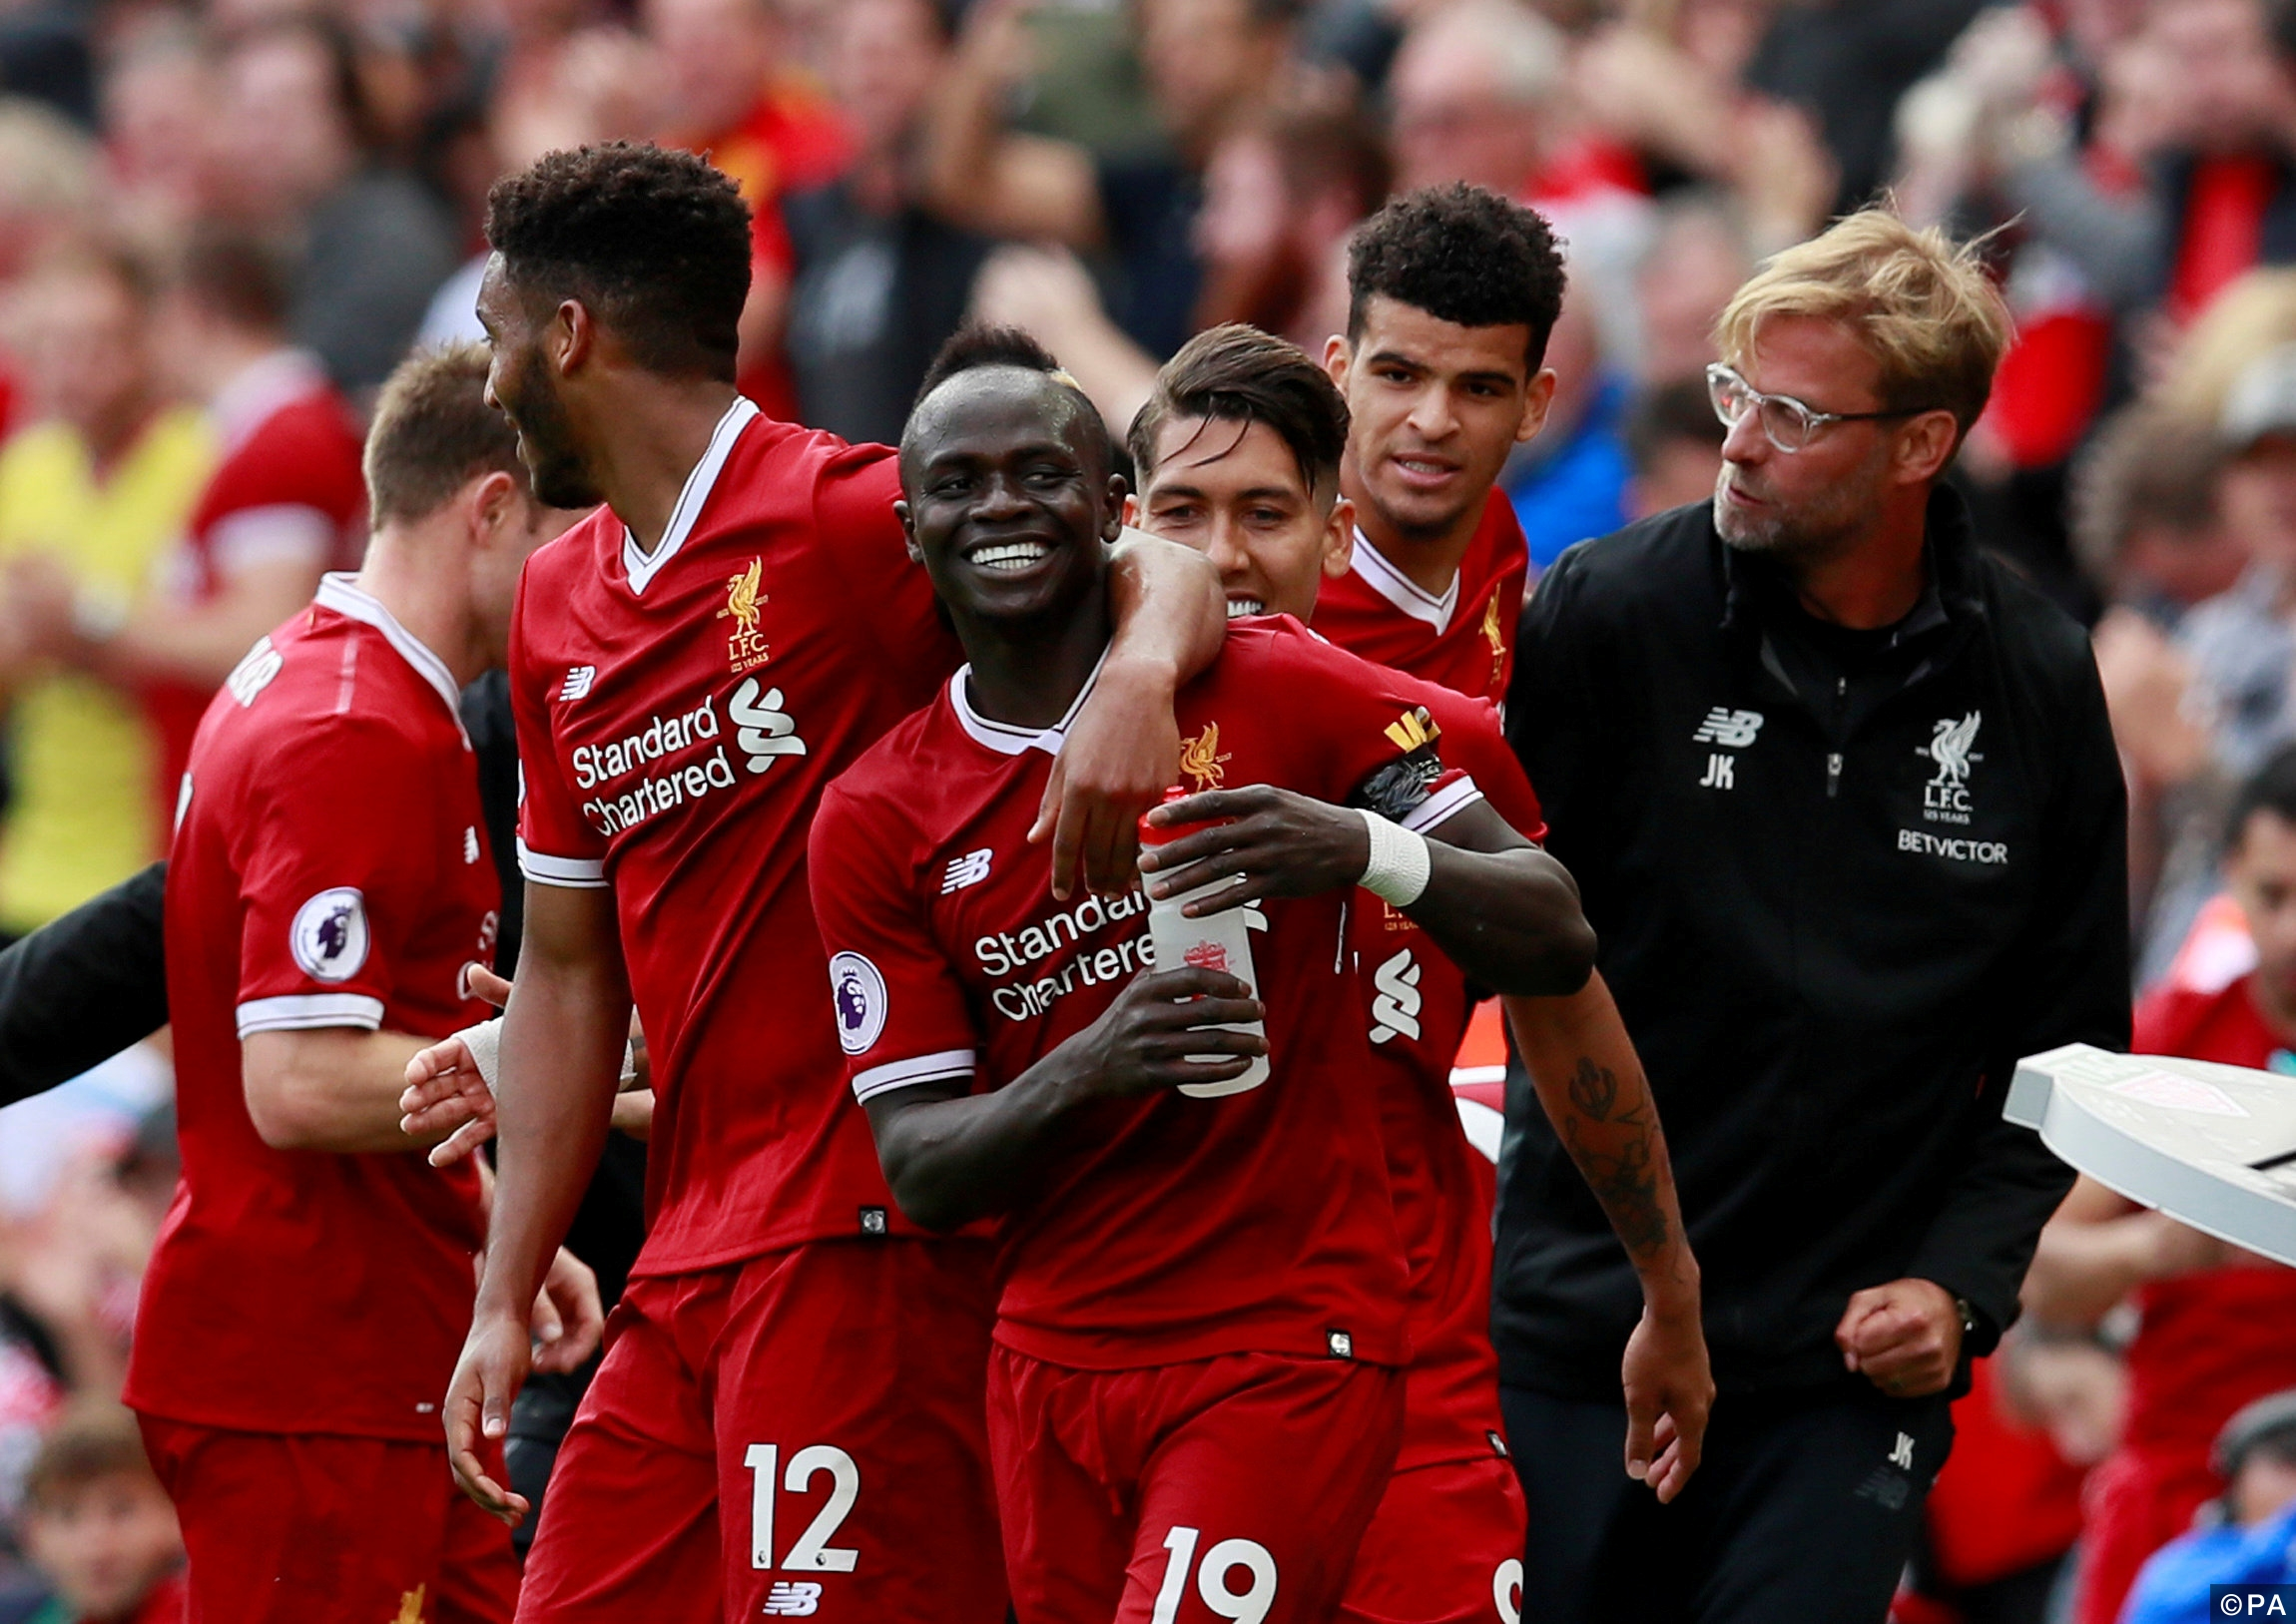 Liverpool vs Arsenal predictions, betting tips and match previews